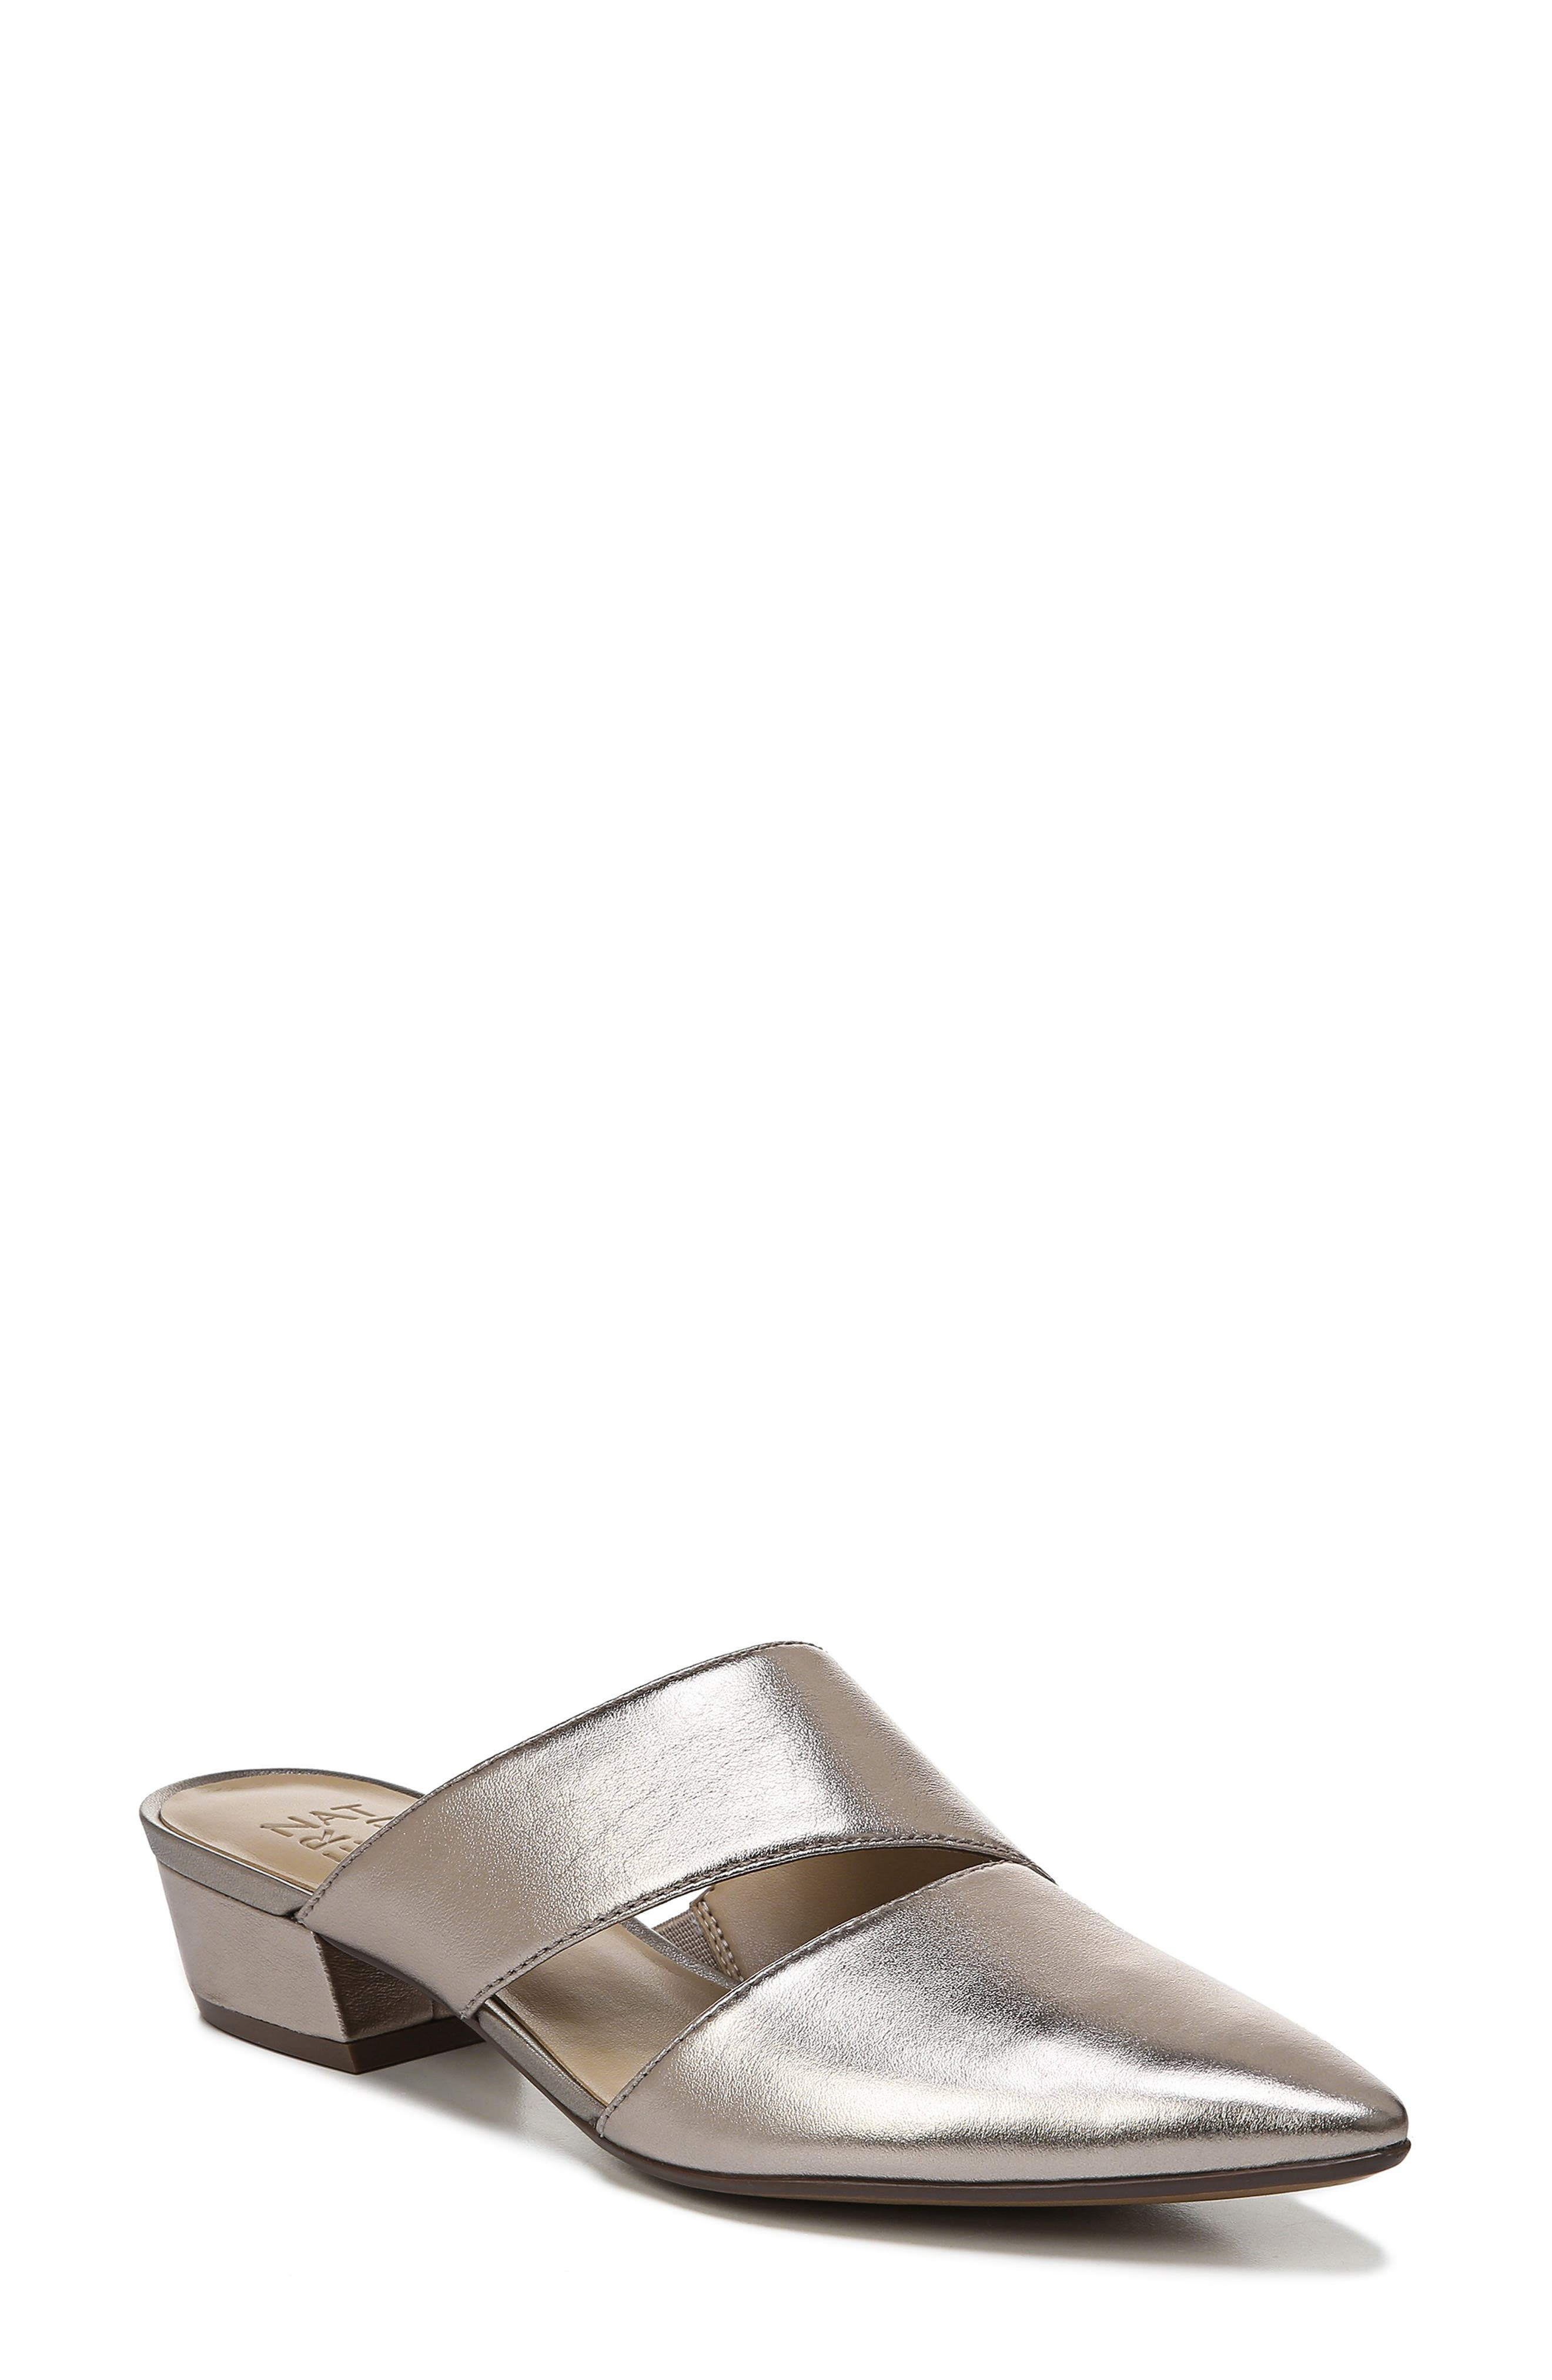 NATURALIZER Bev Pointy Toe Mule, Main, color, LIGHT BRONZE METALLIC LEATHER